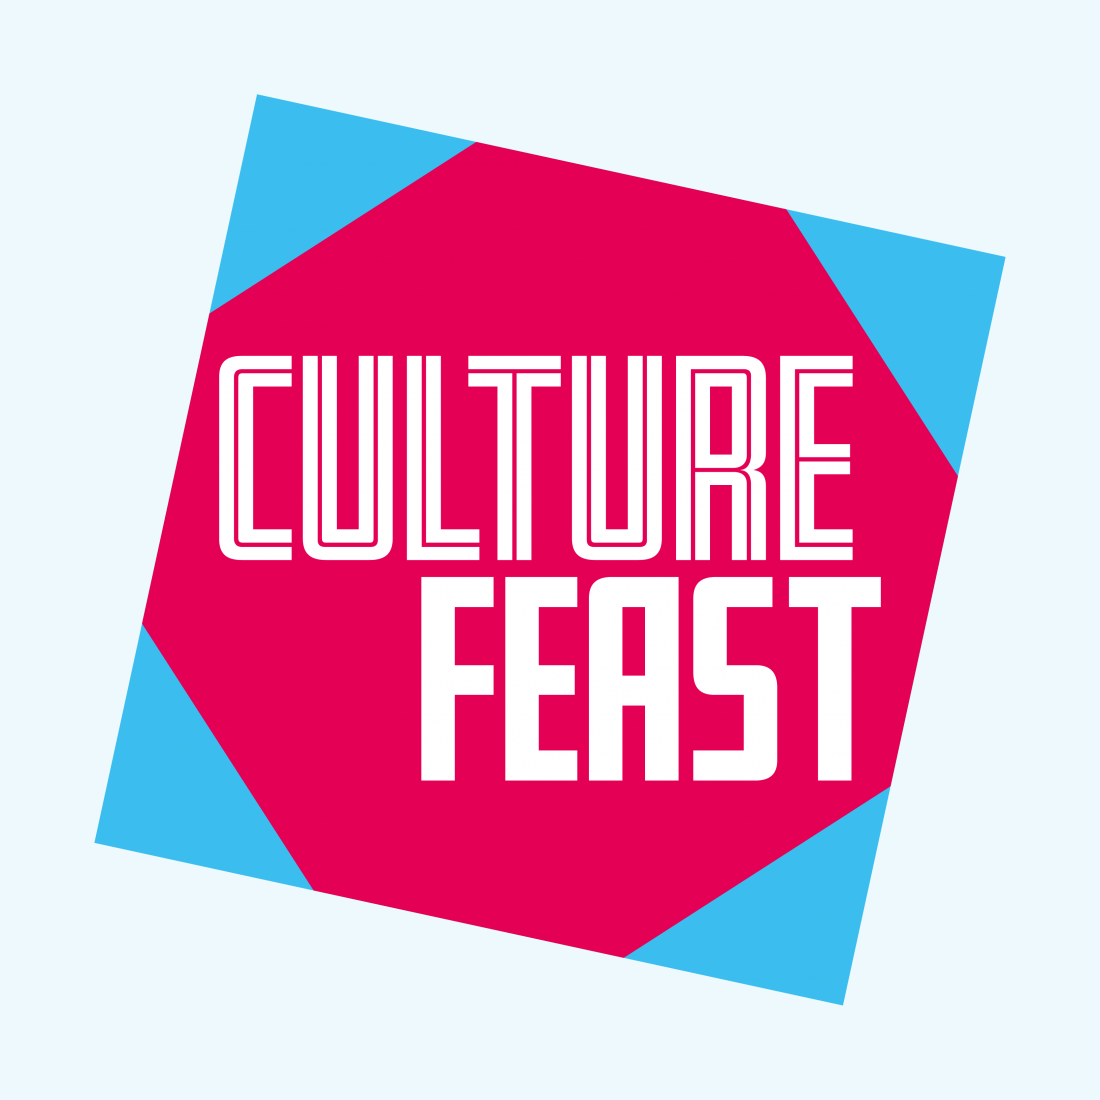 Culture Feast brand identity